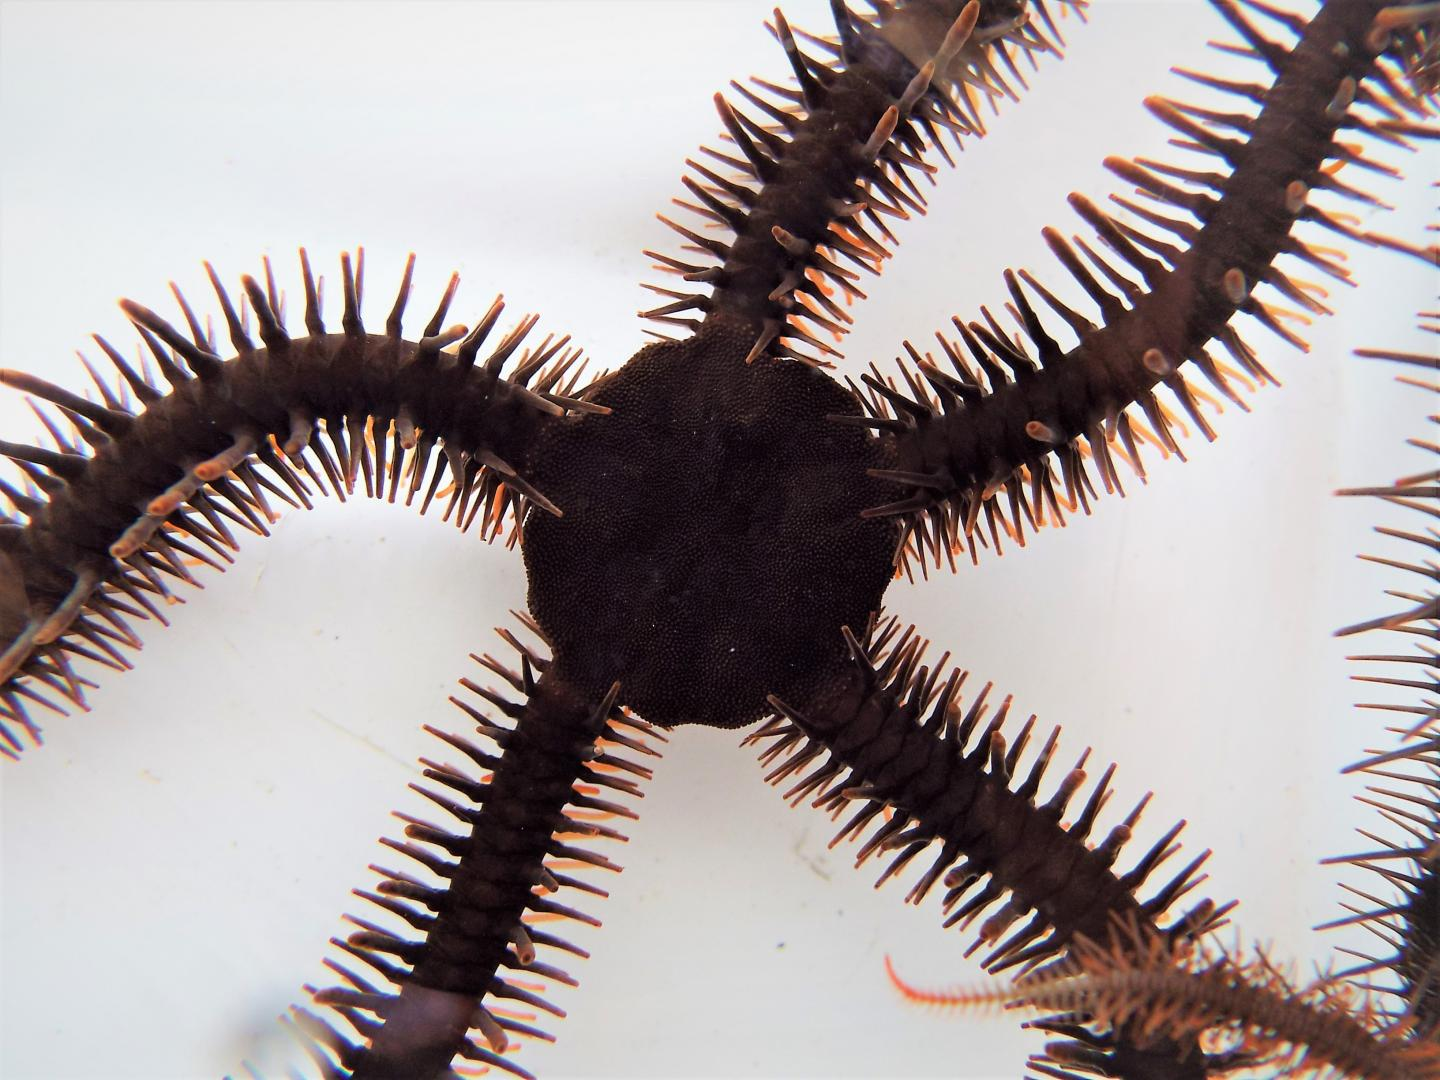 The Red Brittle Star, Ophiocoma wendtii